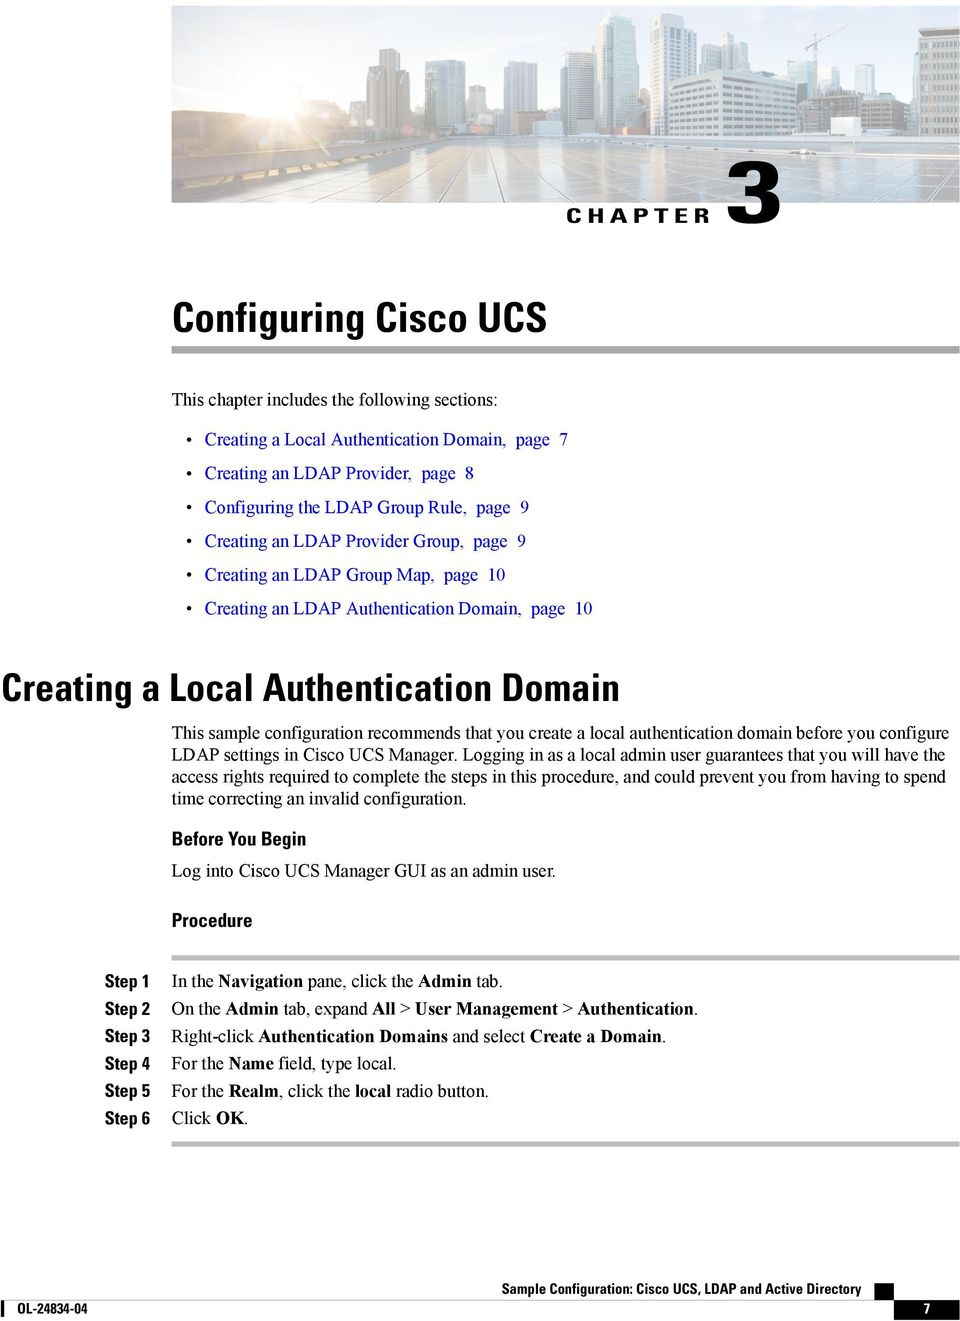 that you create a local authentication domain before you configure LDAP settings in Cisco UCS Manager.